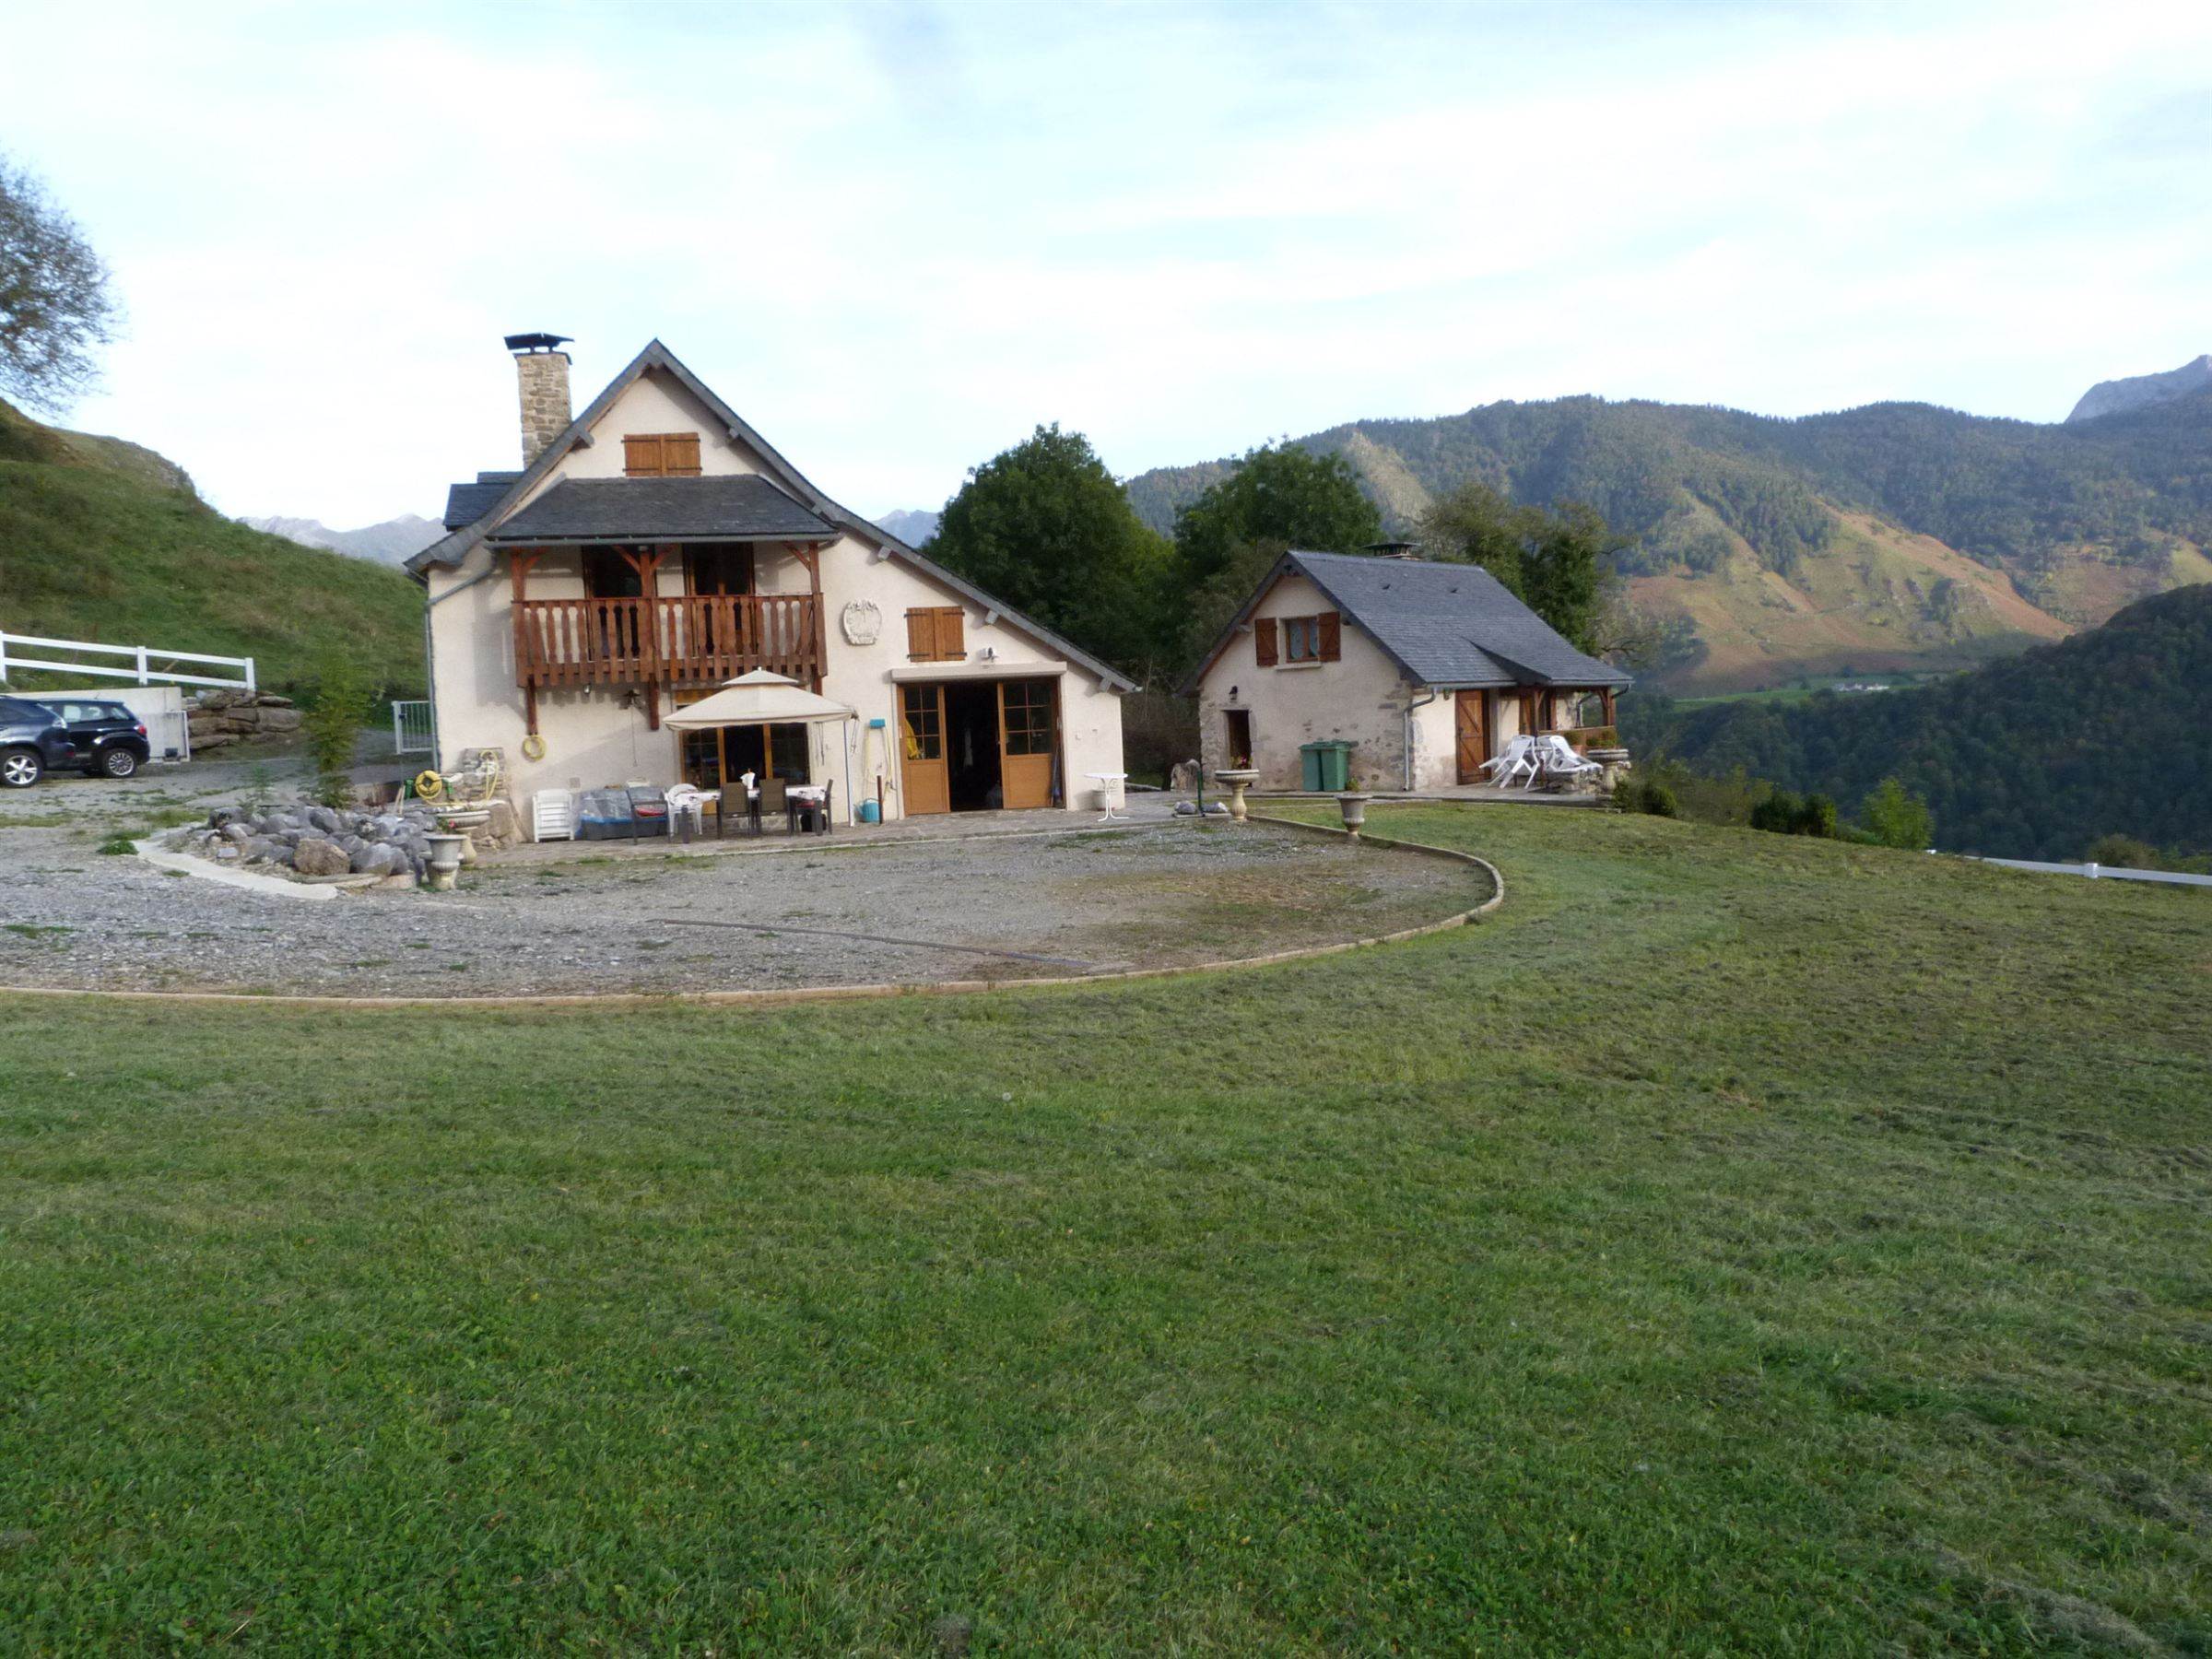 Property For Sale at VALLEE D'ASPE - BELLE PROPRIETE AU CALME AVEC VUE EXTRAORDINAIRE SUR PYRENEES